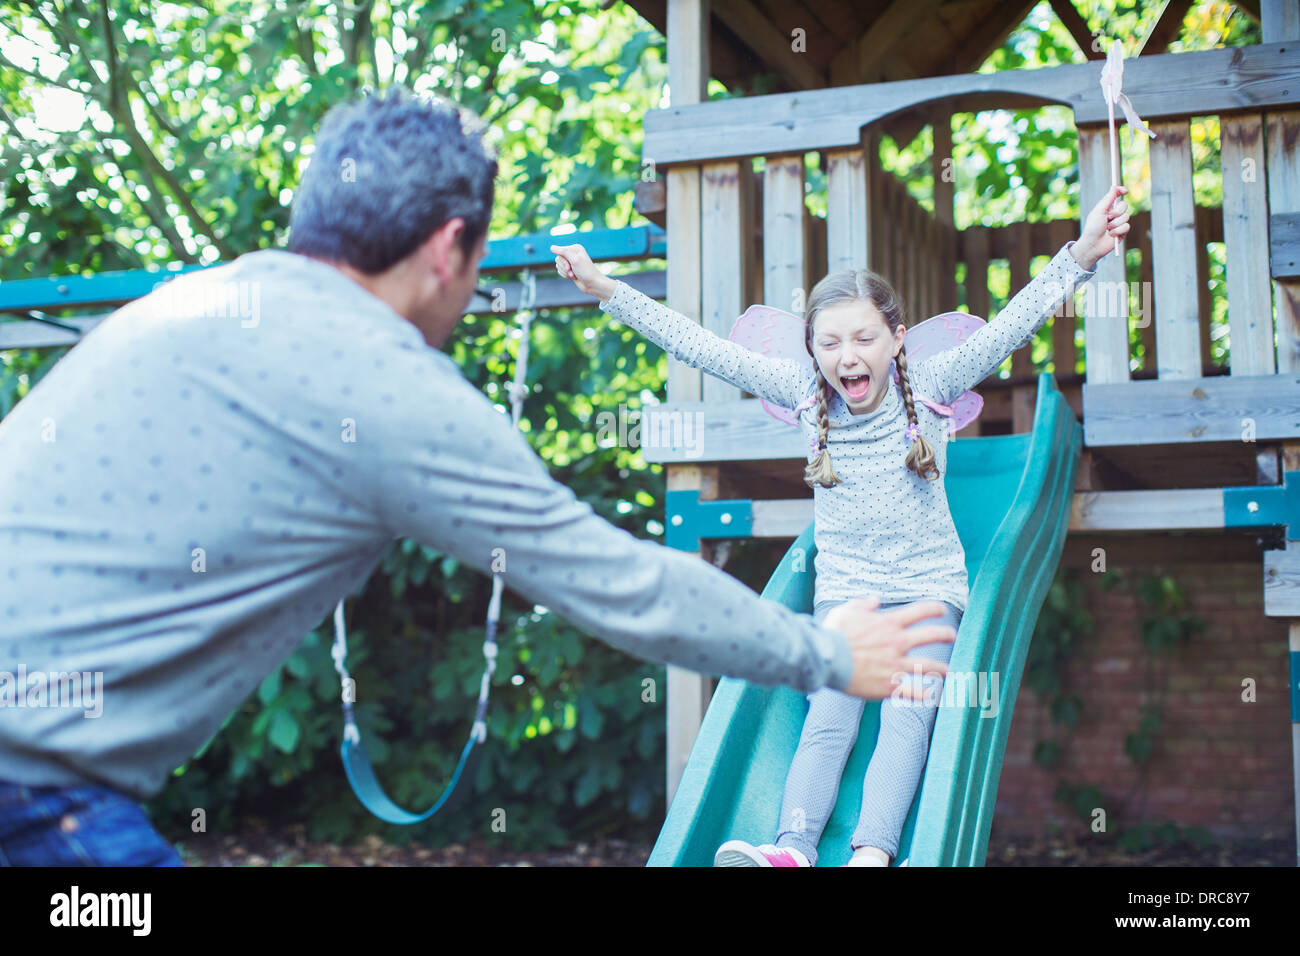 Father catching daughter on slide - Stock Image